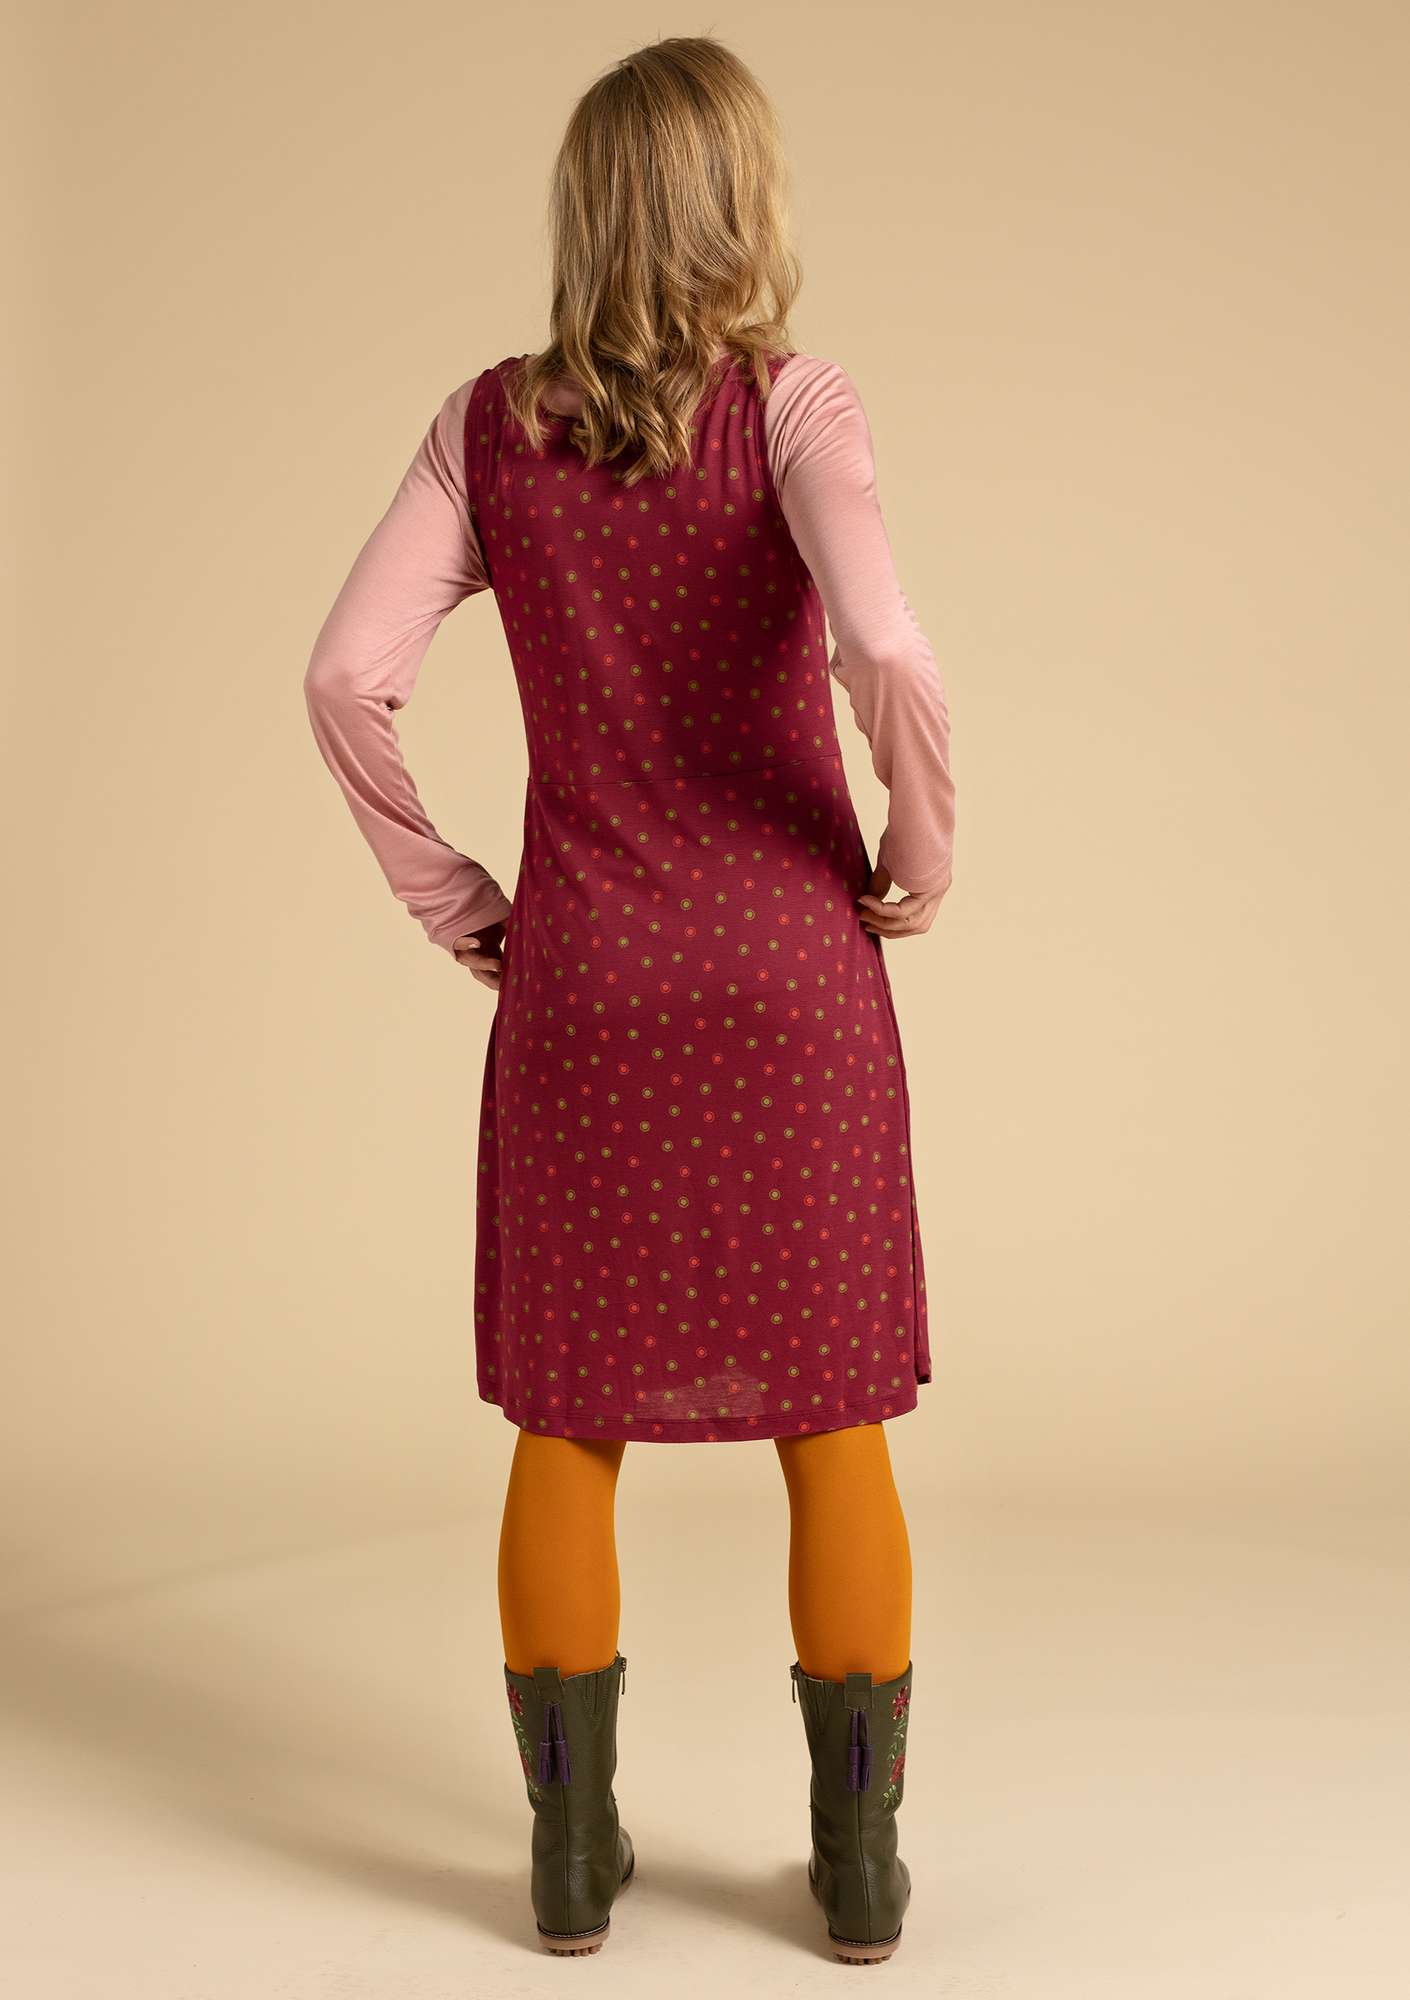 """Twinkle"" dress in modal pomegranate/patterned"